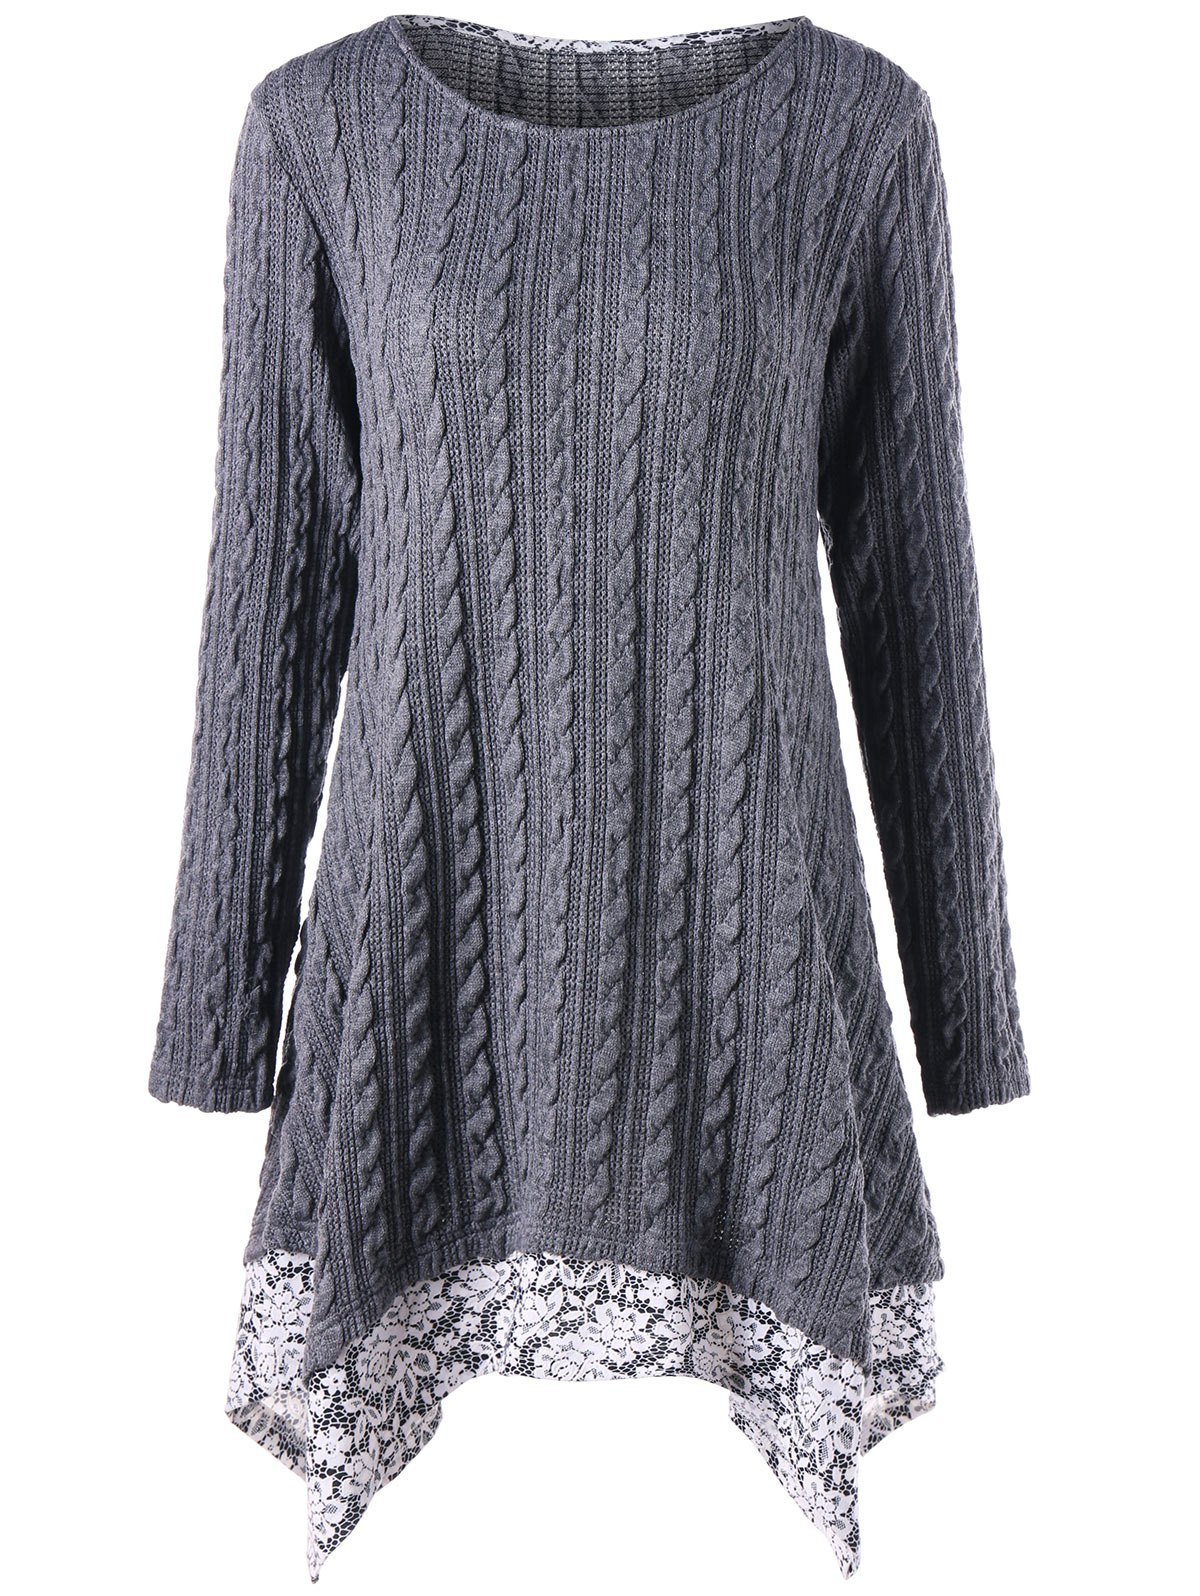 Cable Knitted Floral Trimmed Asymmetric DressWOMEN<br><br>Size: L; Color: GRAY; Style: Casual; Material: Cotton,Polyester; Silhouette: Asymmetrical; Dresses Length: Mini; Neckline: Round Collar; Sleeve Length: Long Sleeves; Pattern Type: Floral; With Belt: No; Season: Fall,Spring; Weight: 0.5490kg; Package Contents: 1 x Dress; Occasion: Causal;